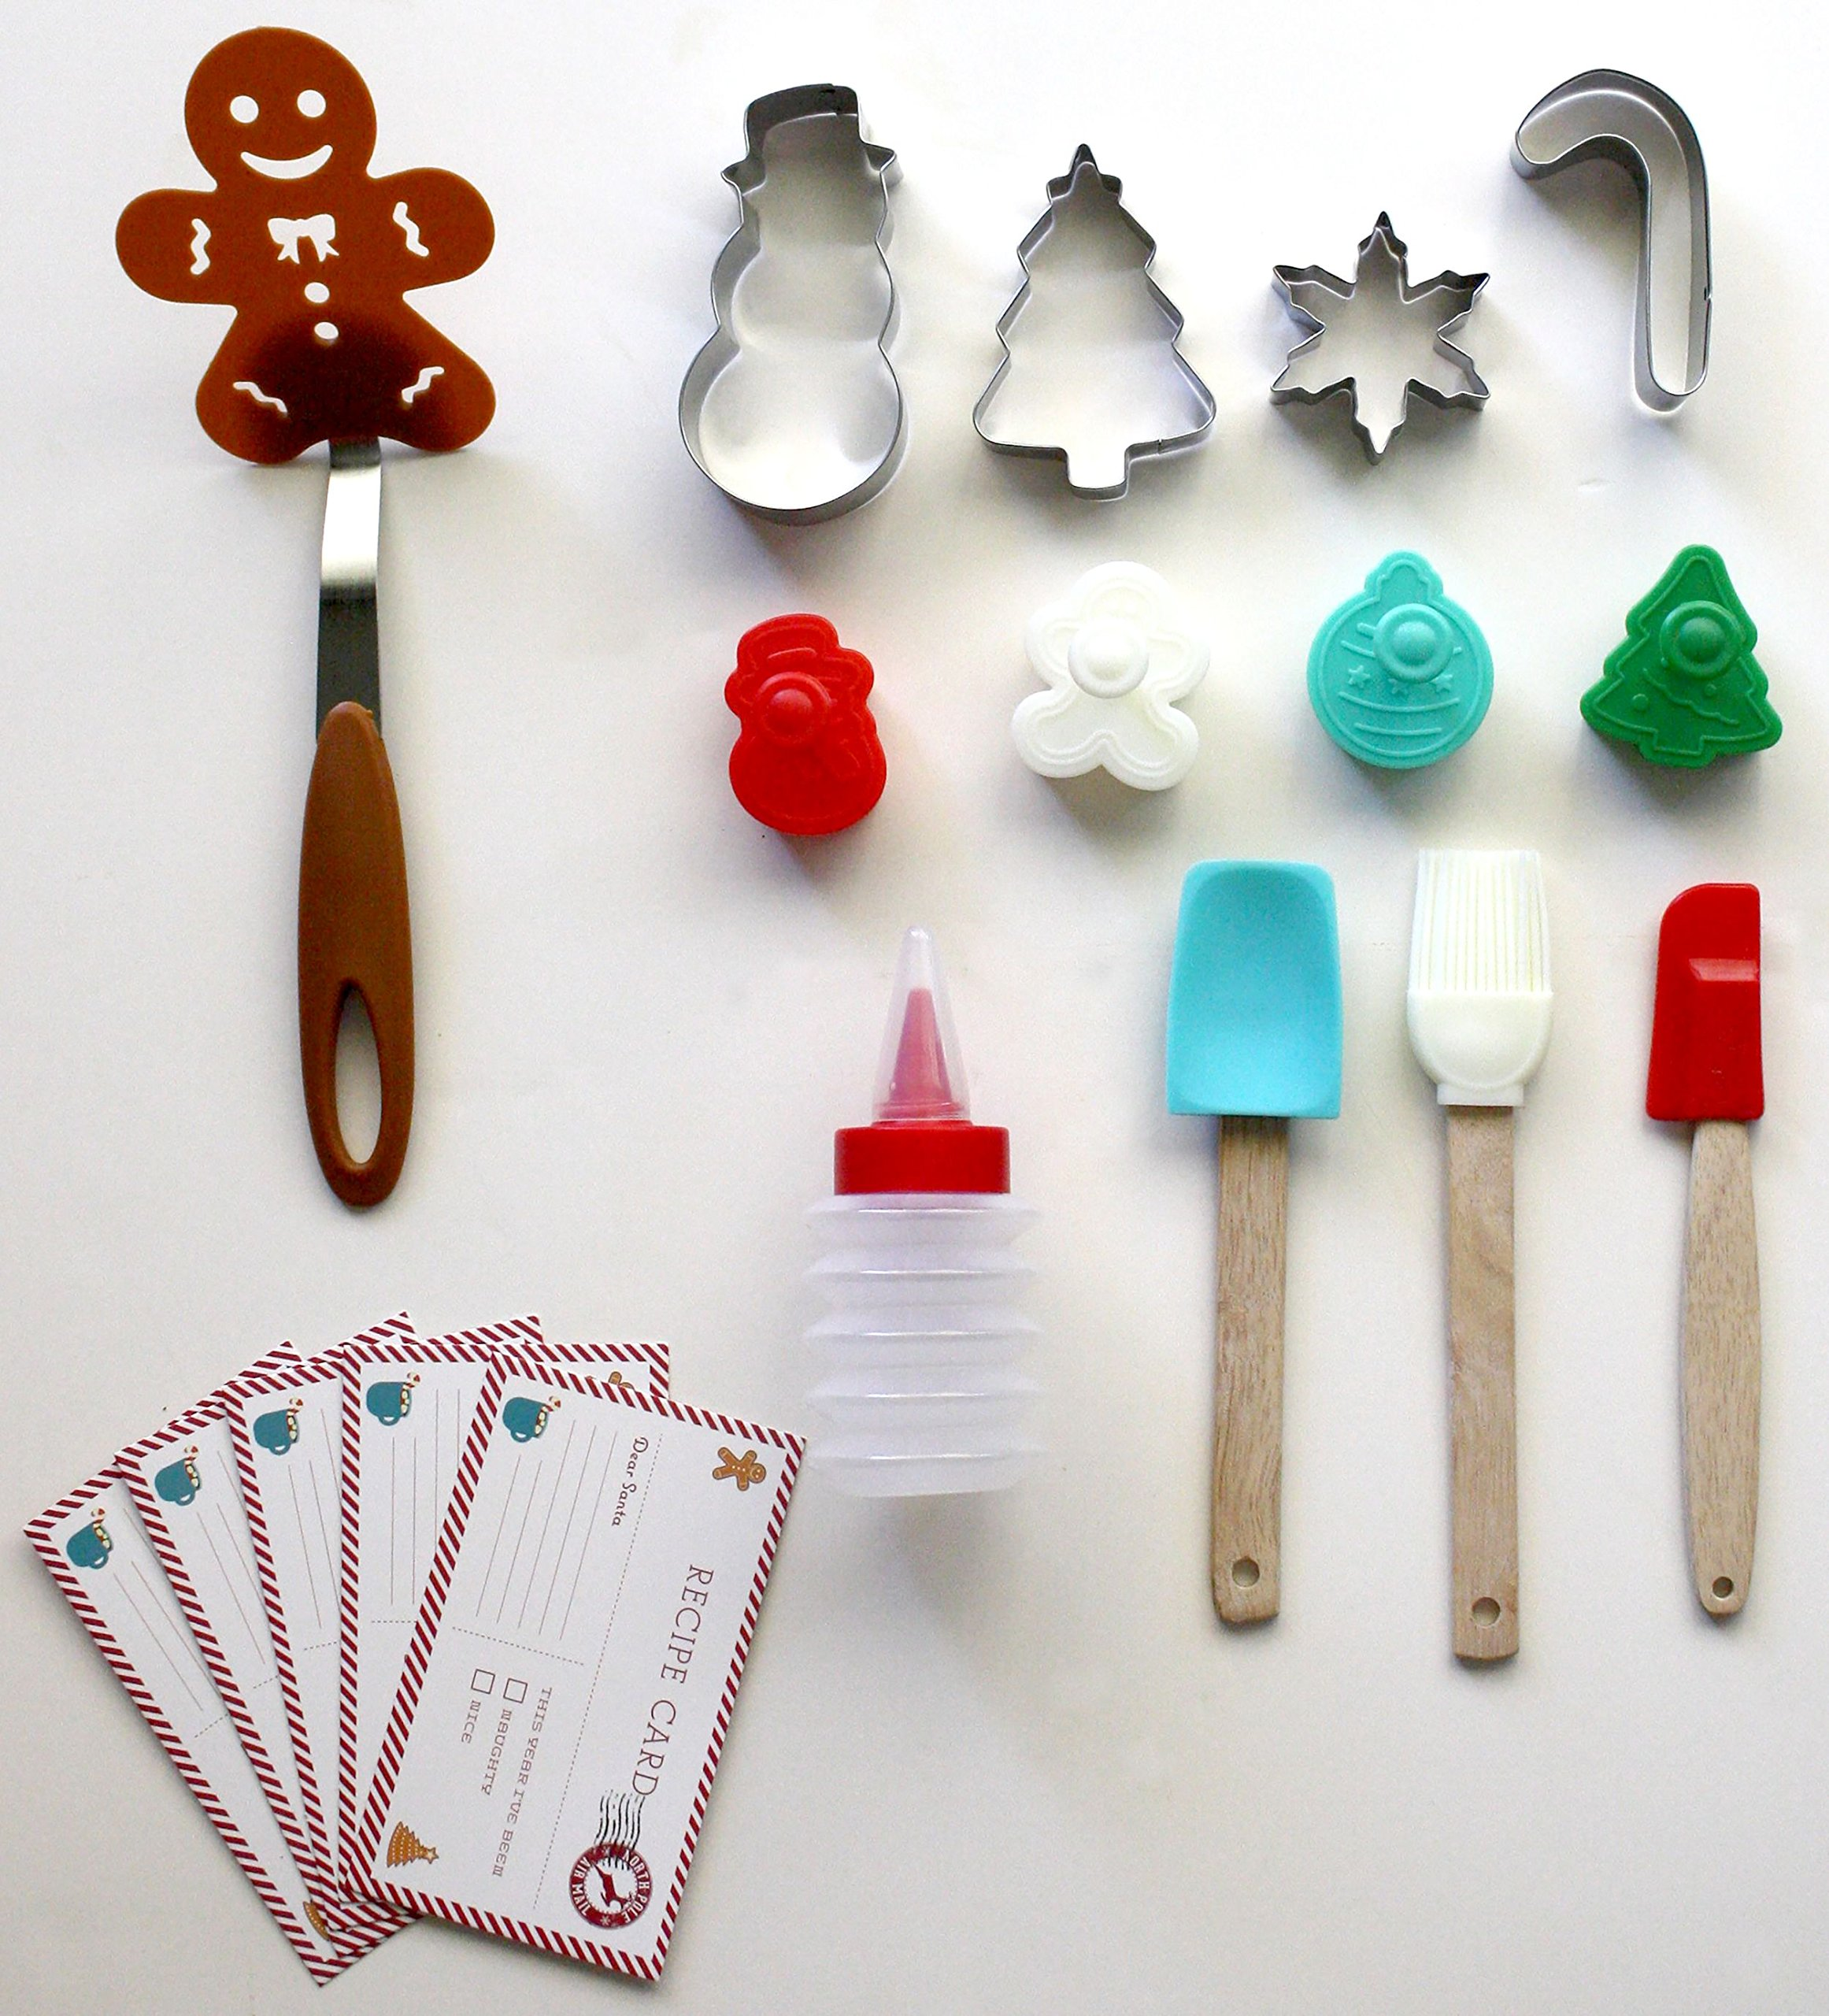 Handstand Kitchen 18-piece Cookies for Santa Real Baking Set with Recipes for Kids by Handstand Kitchen (Image #2)